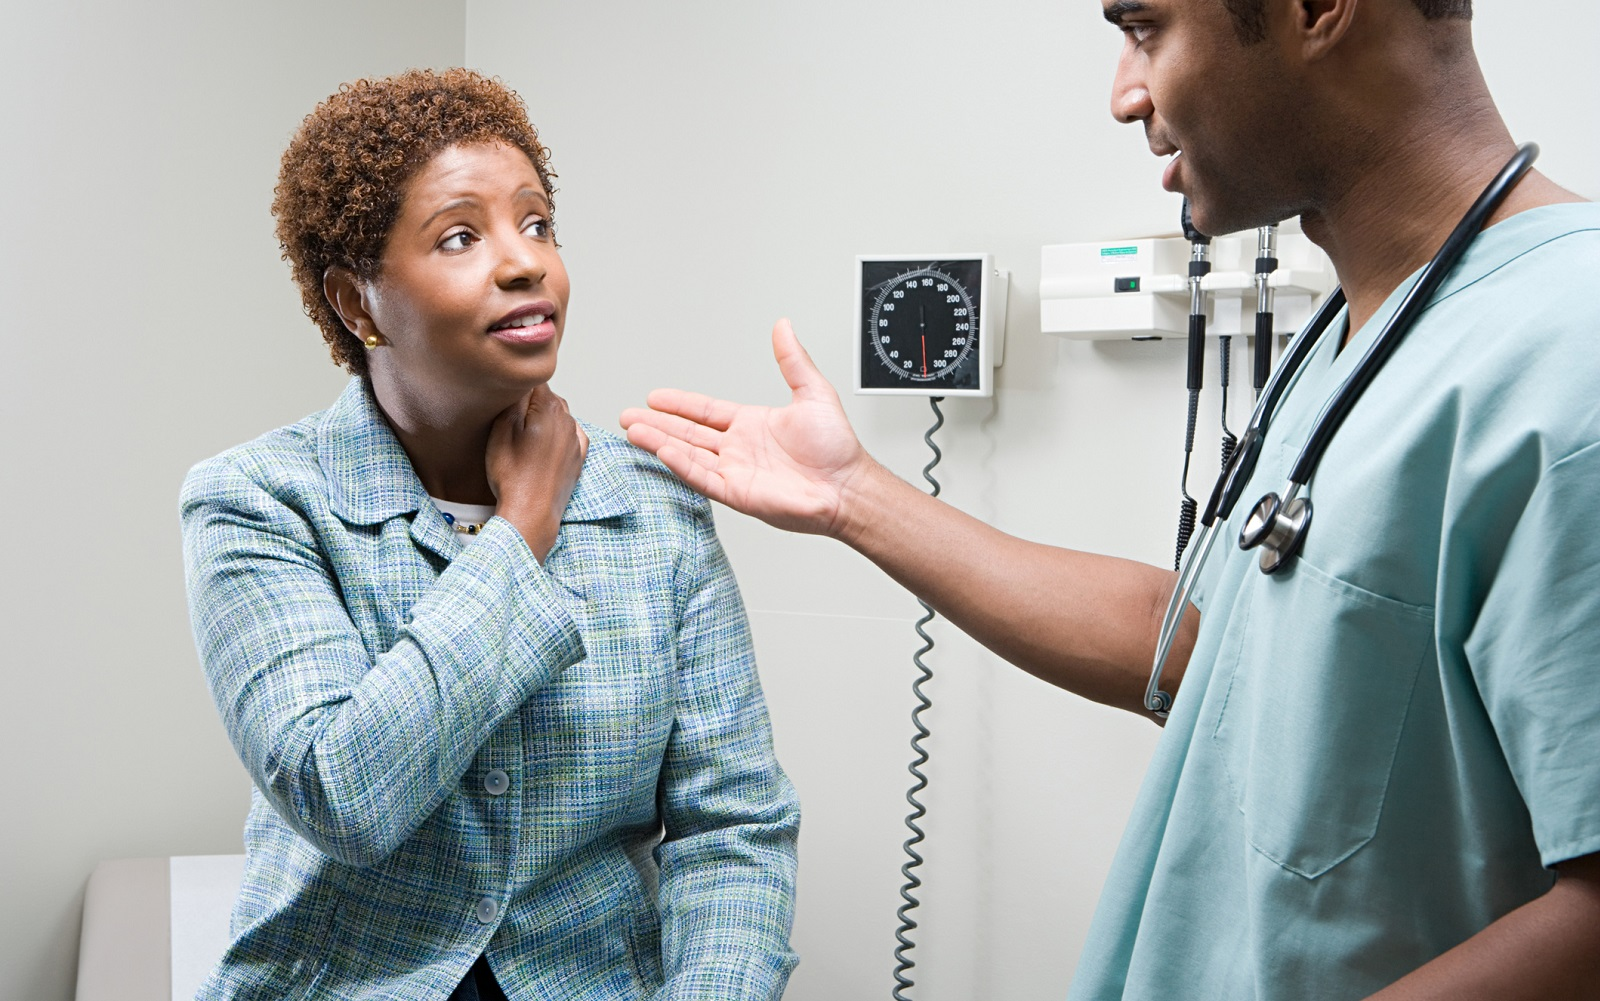 An African-American woman speaking with a male clinician